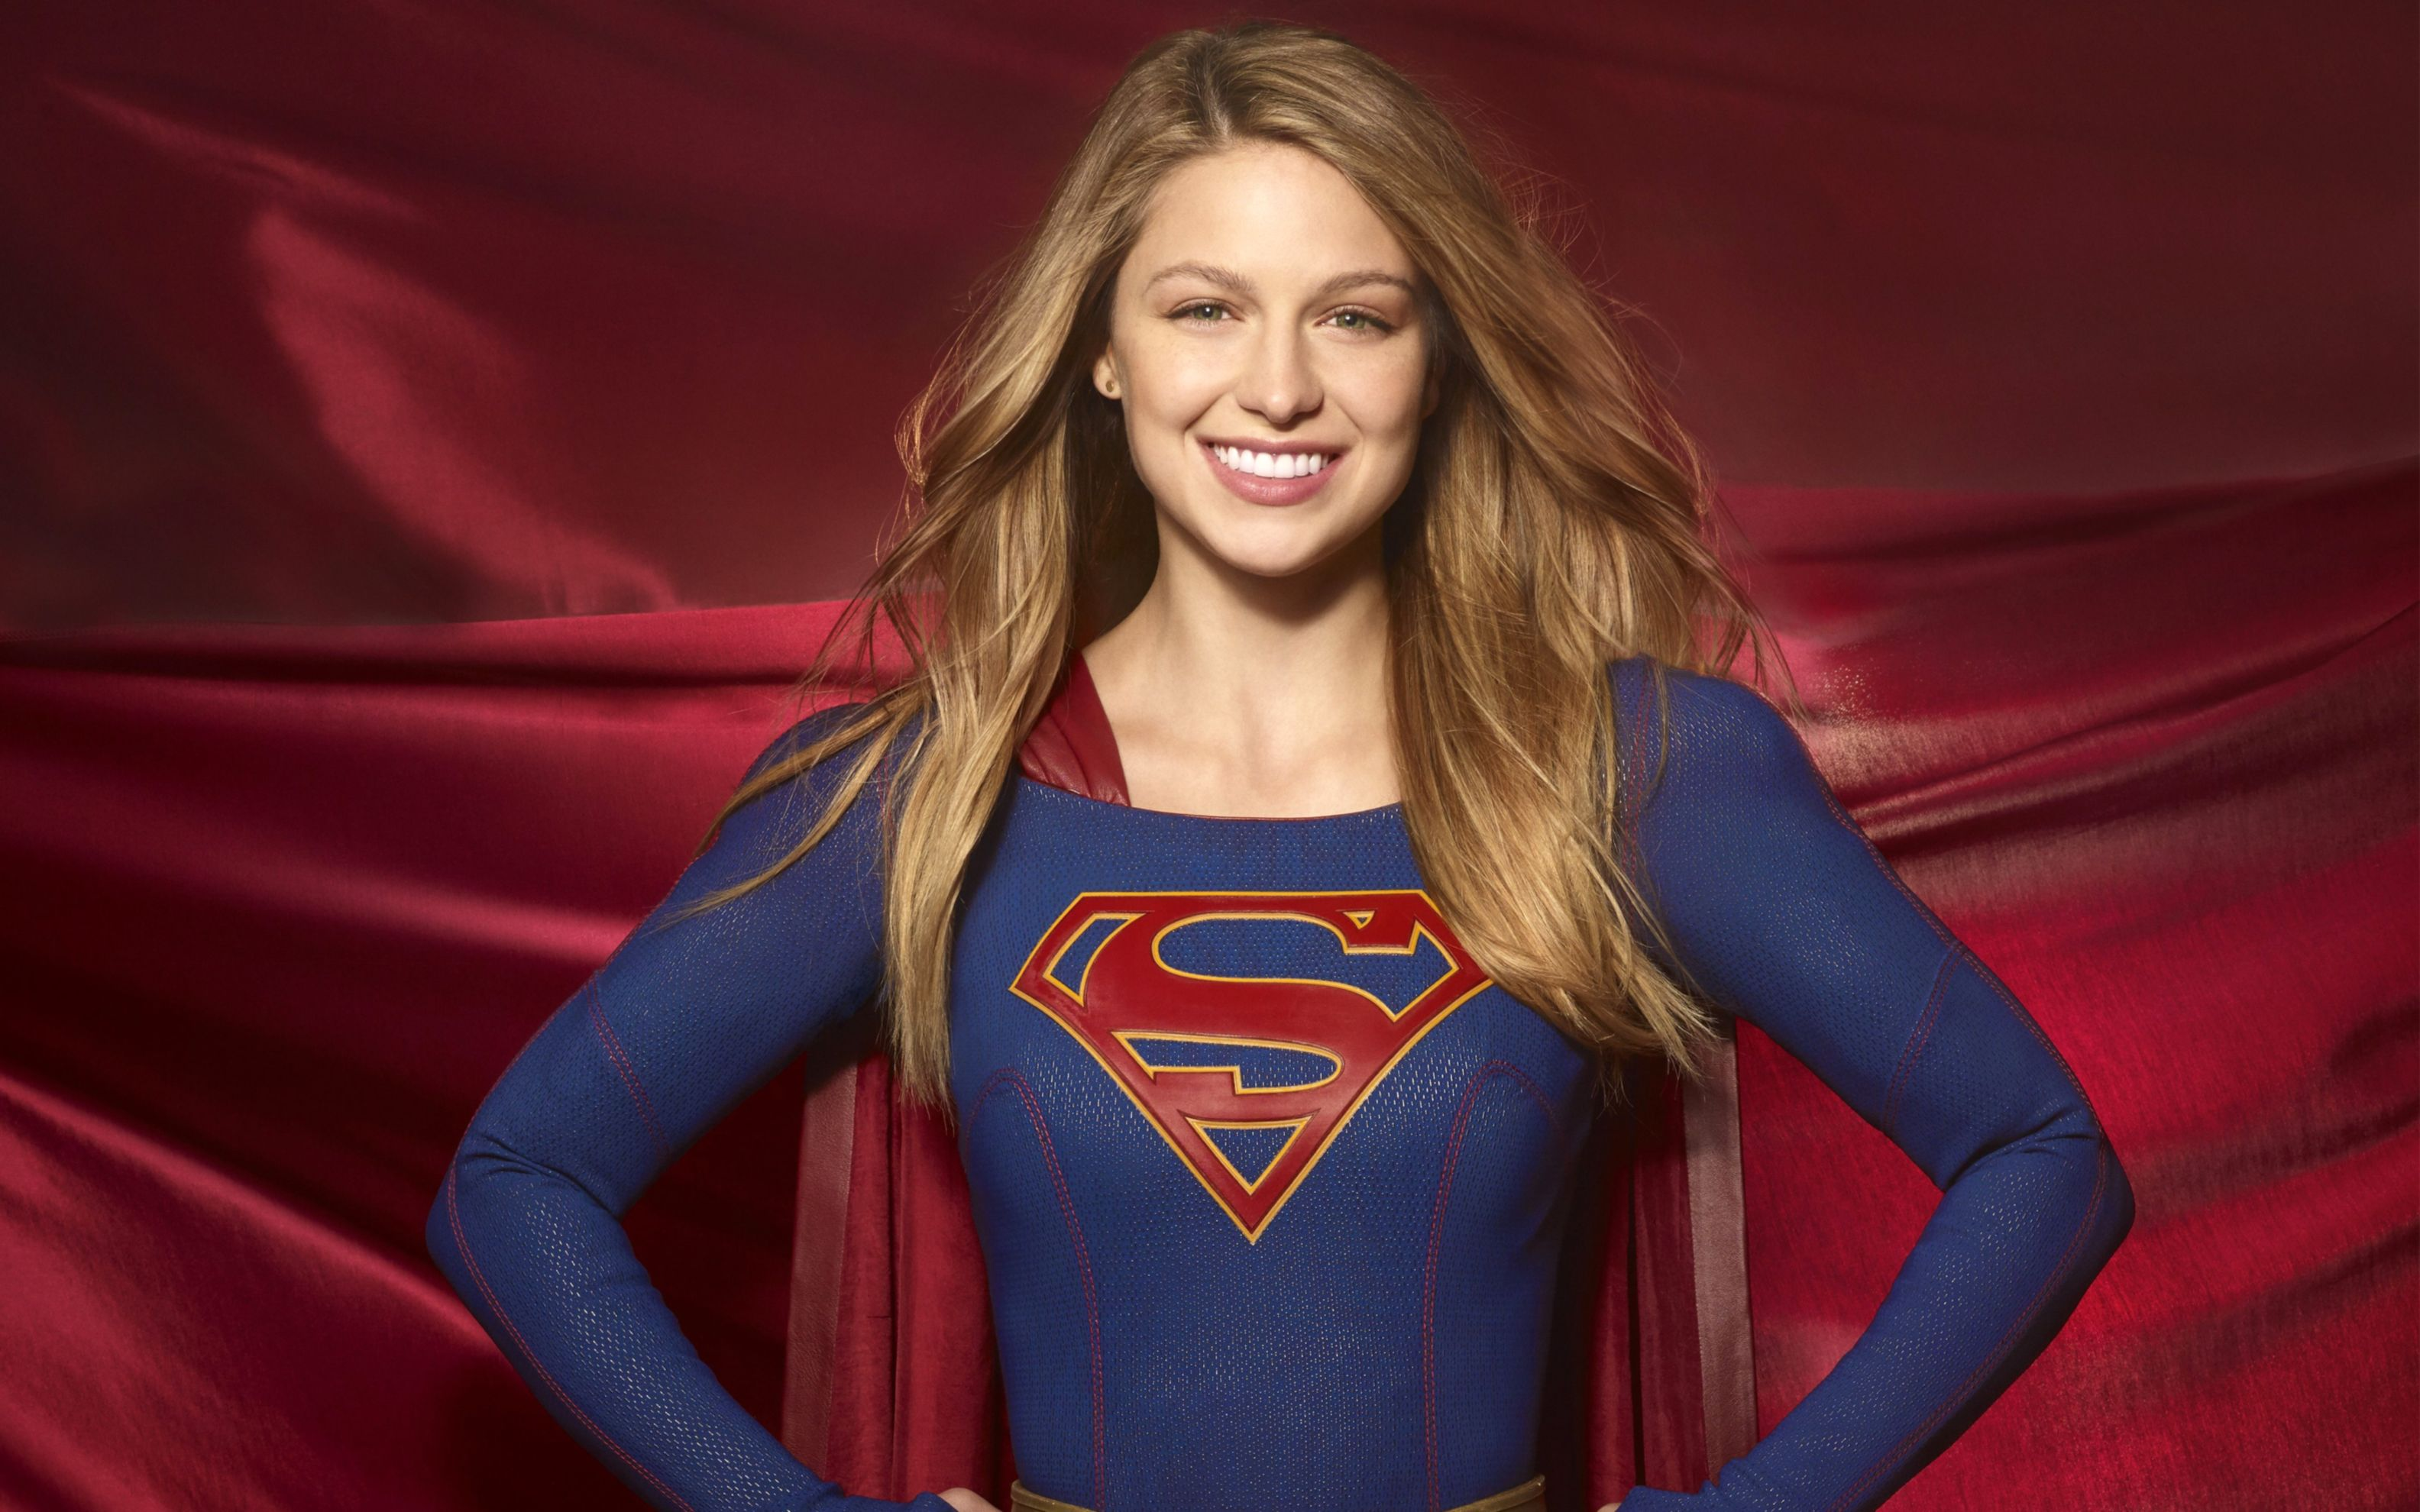 Download free HD Melissa Benoist Supergirl Season 2 Wide Wallpaper, image